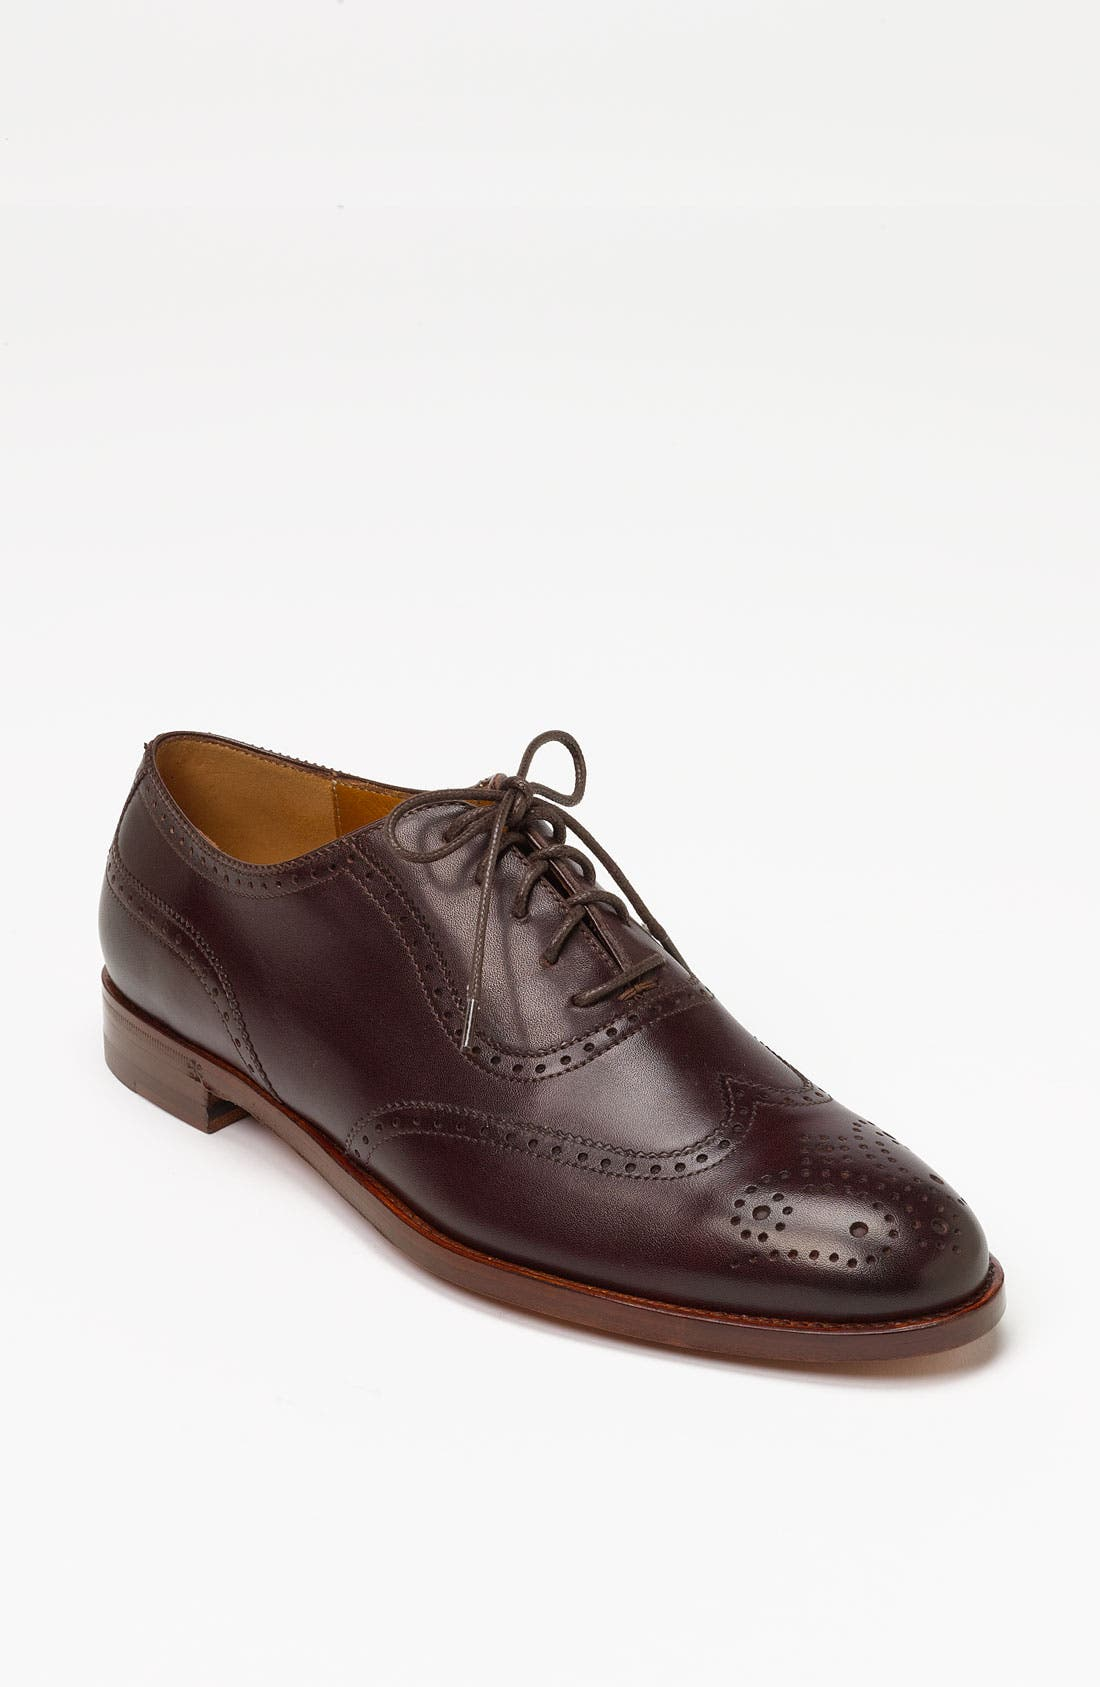 Alternate Image 1 Selected - Ralph Lauren Collection 'Quintin' Oxford